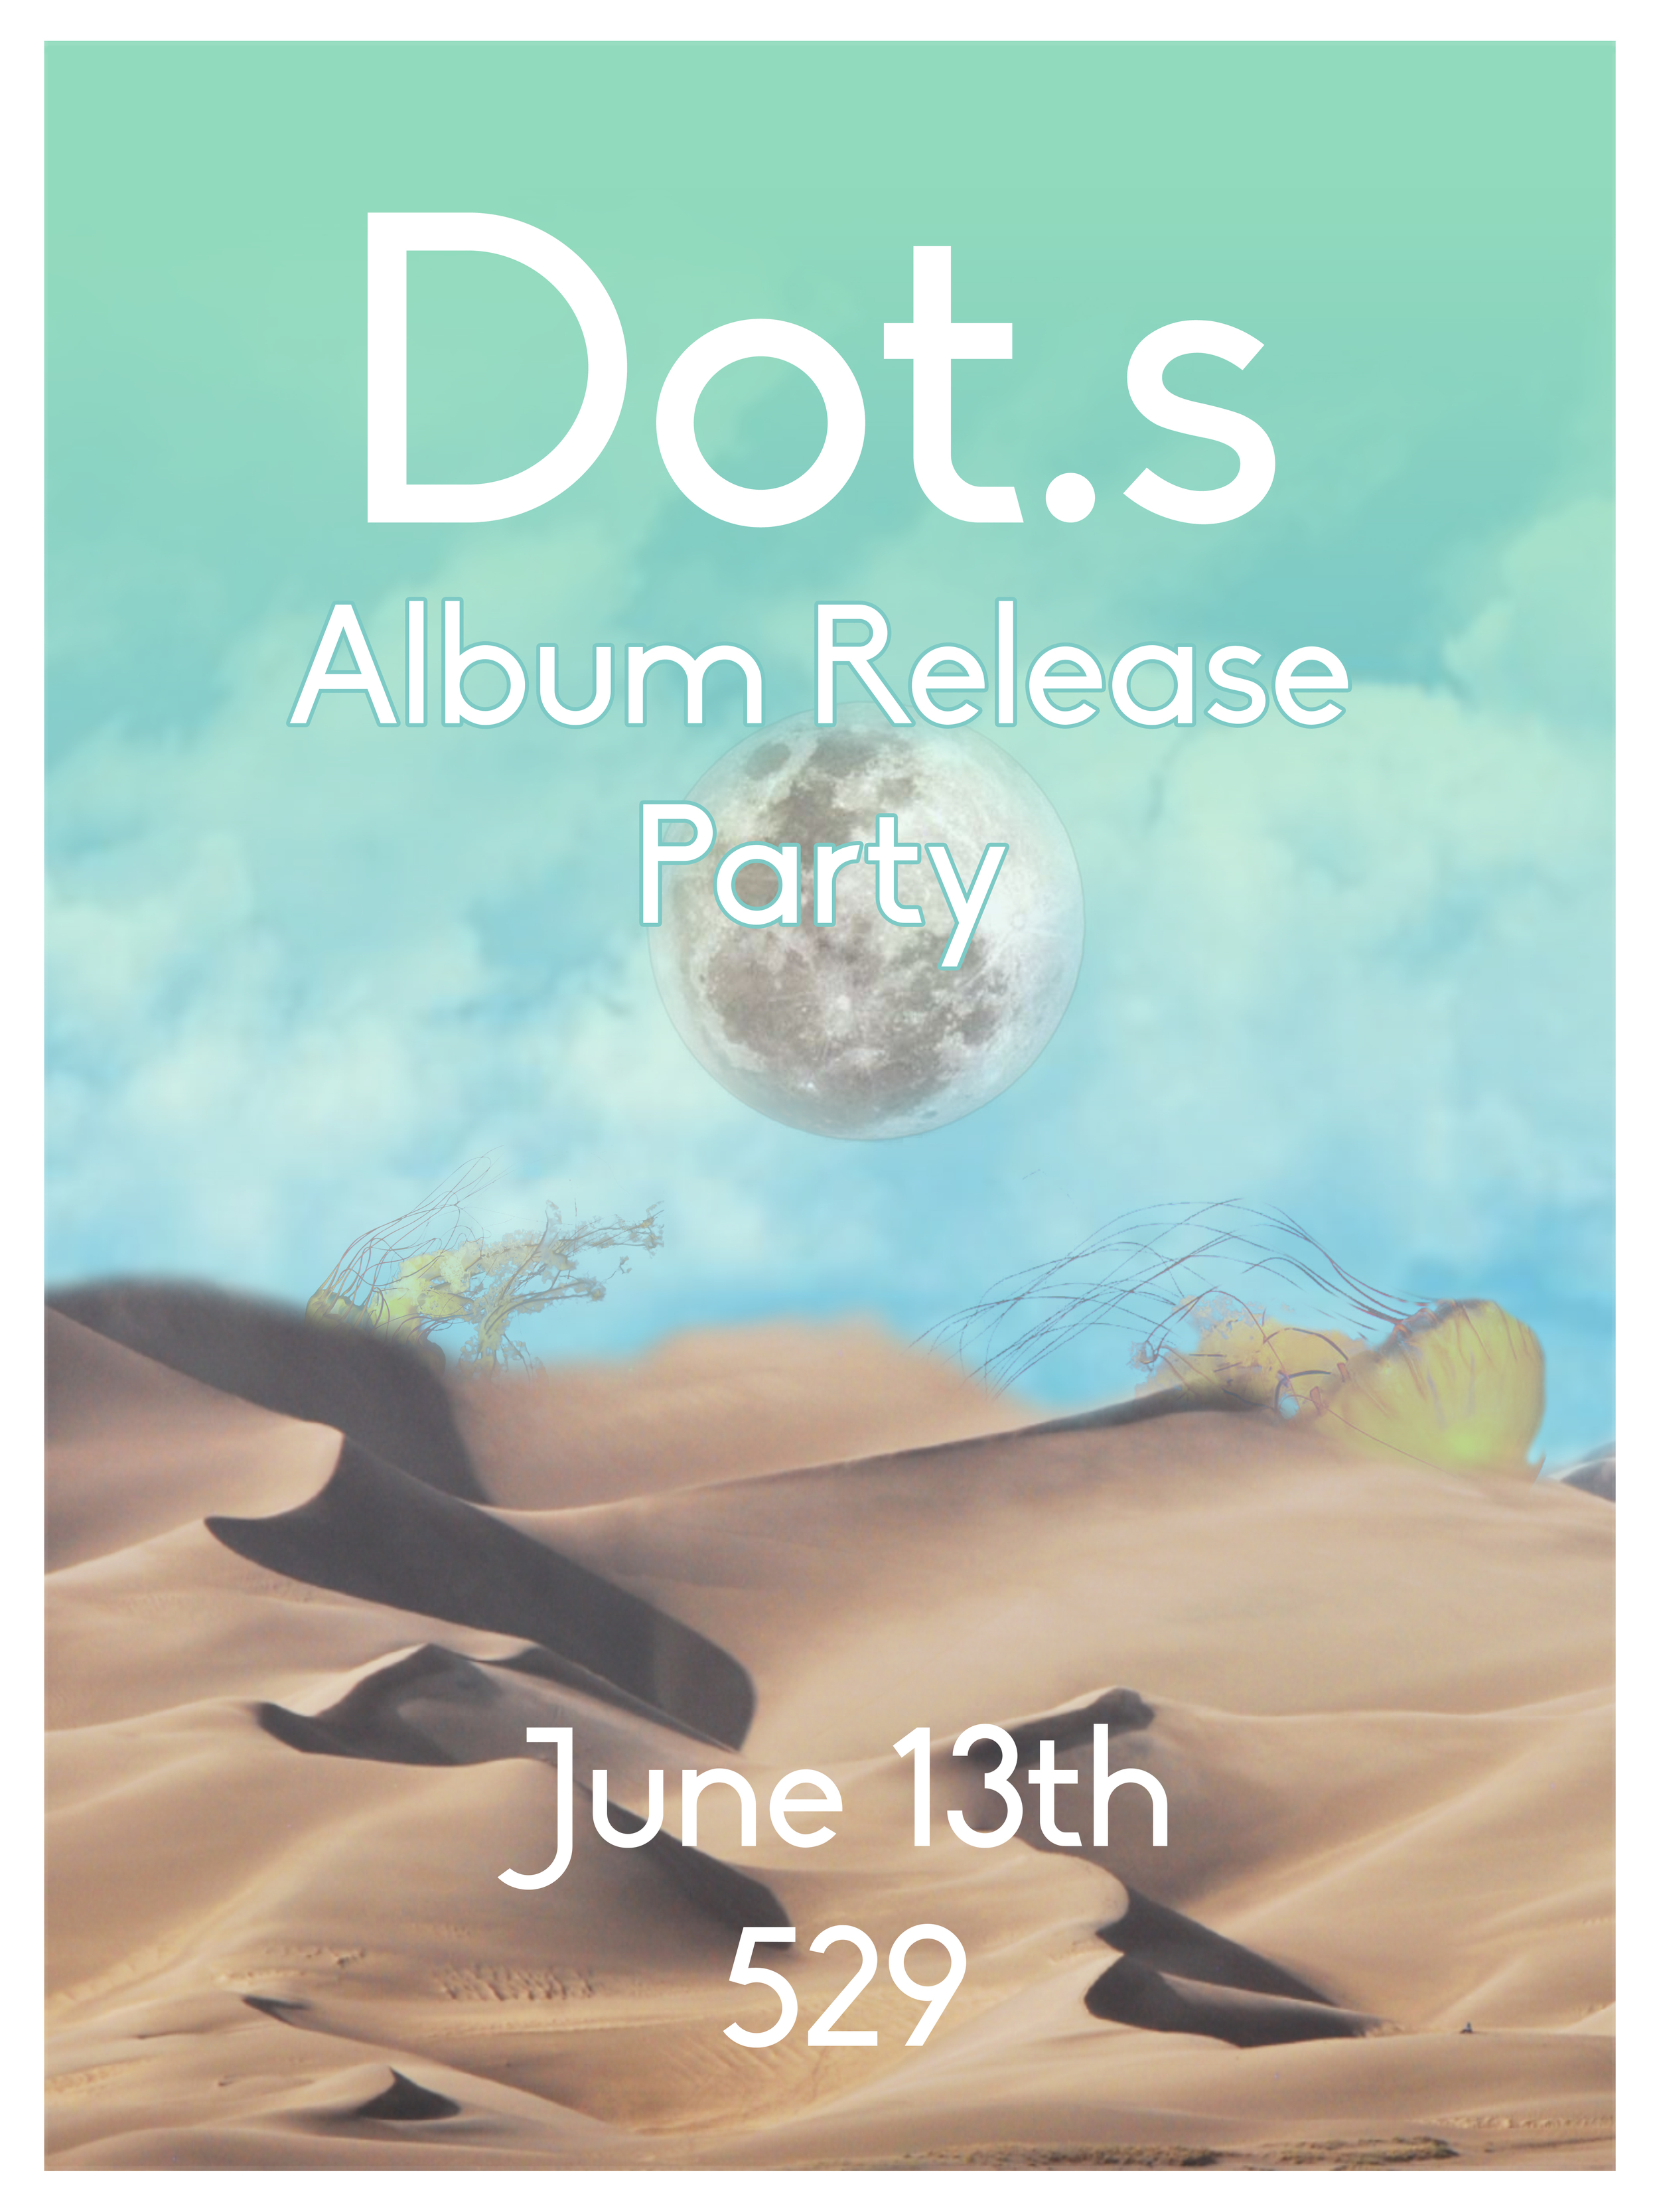 Deer Bear Wolf Records releases its latestalbum, Jellyfiss by Dot.s,this Saturday night at 529.